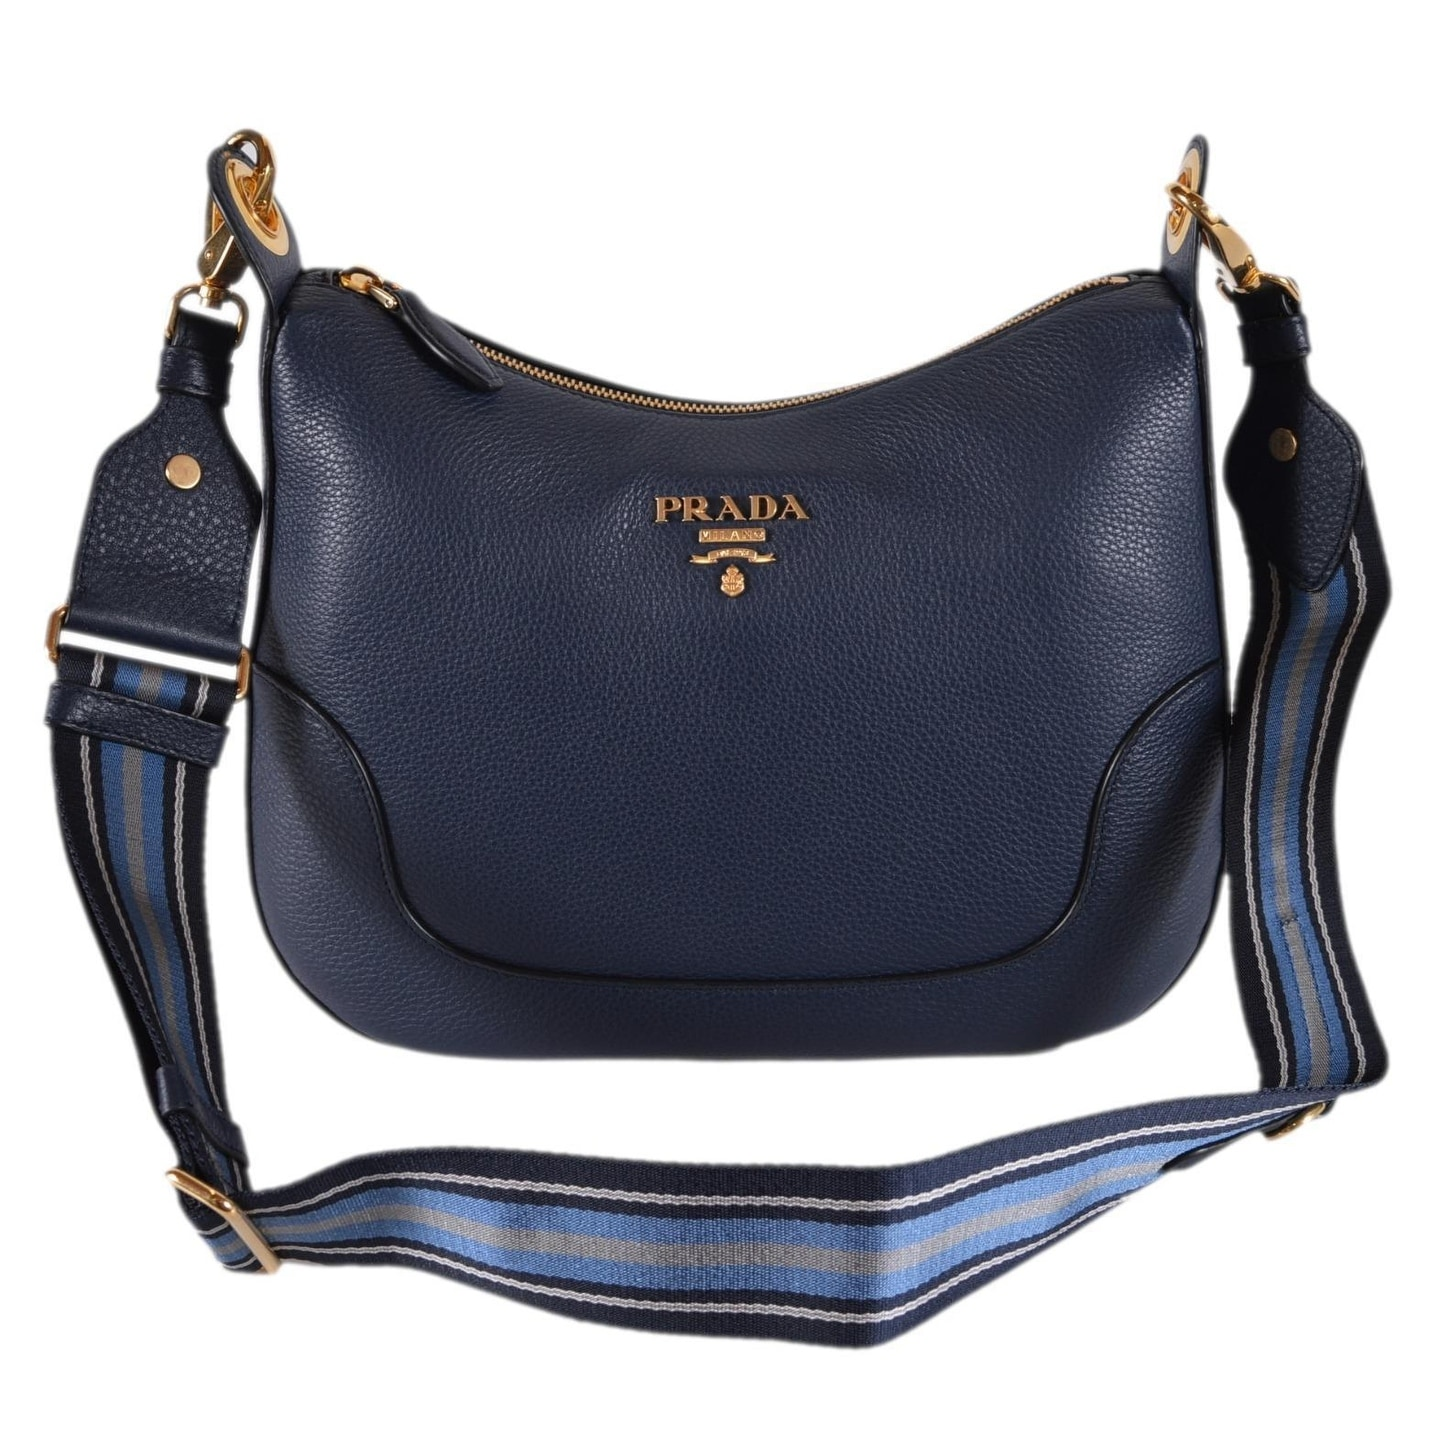 7670aa507735 Shop Prada 1BC052 Baltico Soft Leather Daino Stripe Strap Crossbody Purse  Bag - Blue - Free Shipping Today - Overstock - 26395800